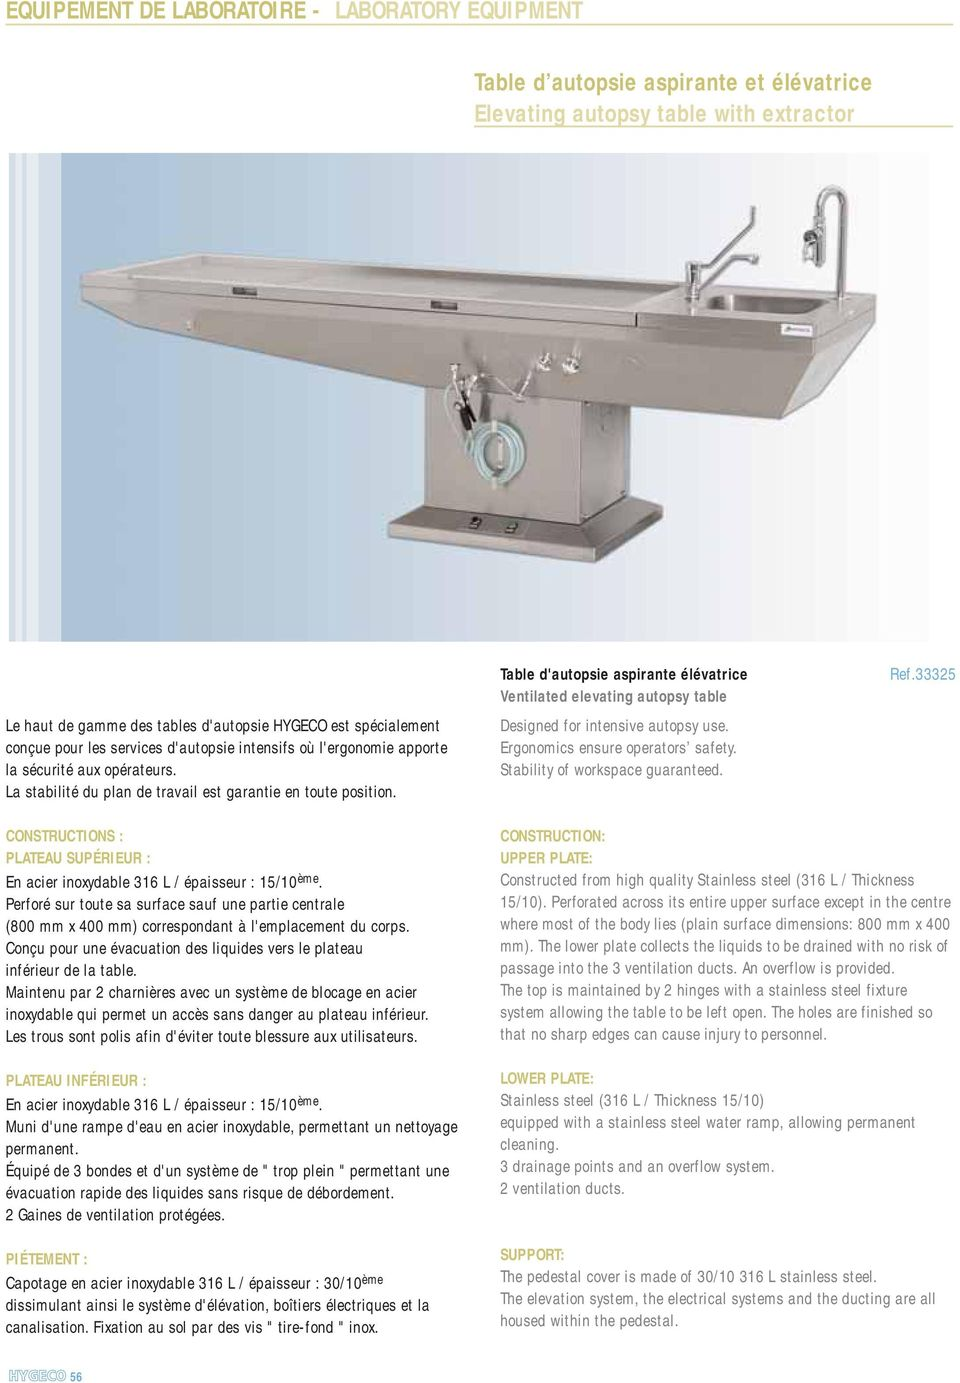 Table d'autopsie aspirante élévatrice Ventilated elevating autopsy table Designed for intensive autopsy use. Ergonomics ensure operators safety. Stability of workspace guaranteed. Ref.